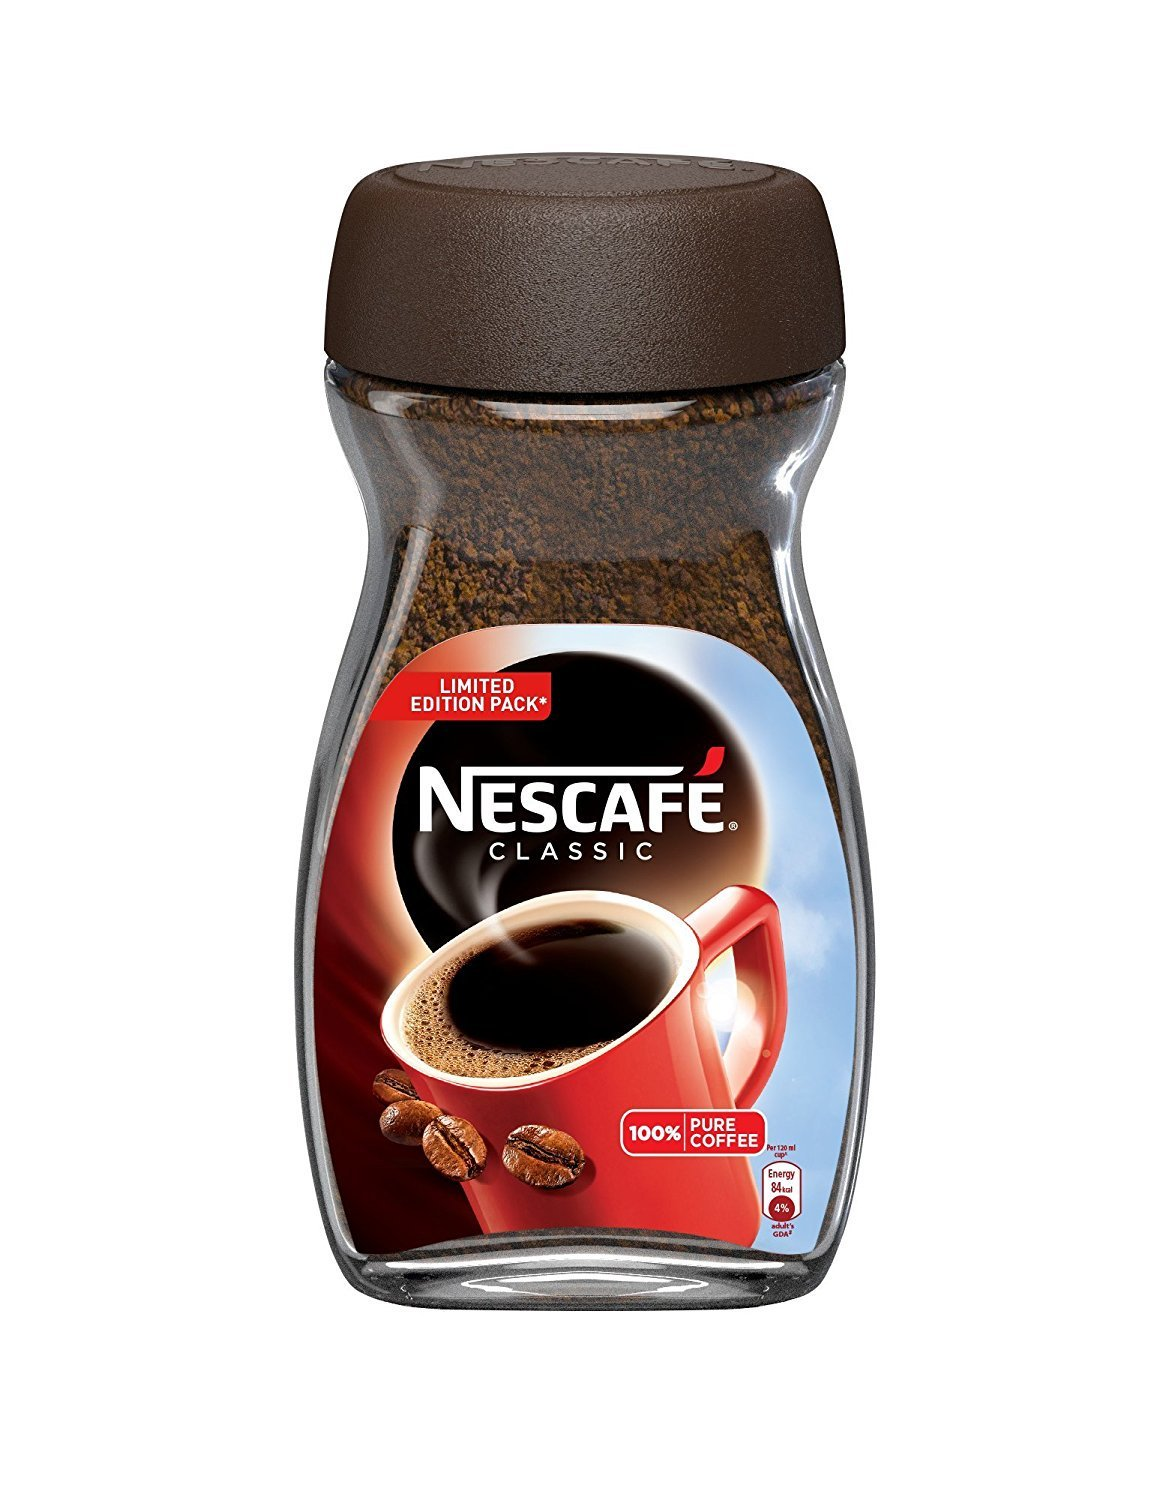 Get Nescafé Classic Jar Limited Edition Pack, 200g with Free Sugar Pot at Rs 429   Amazon Offer